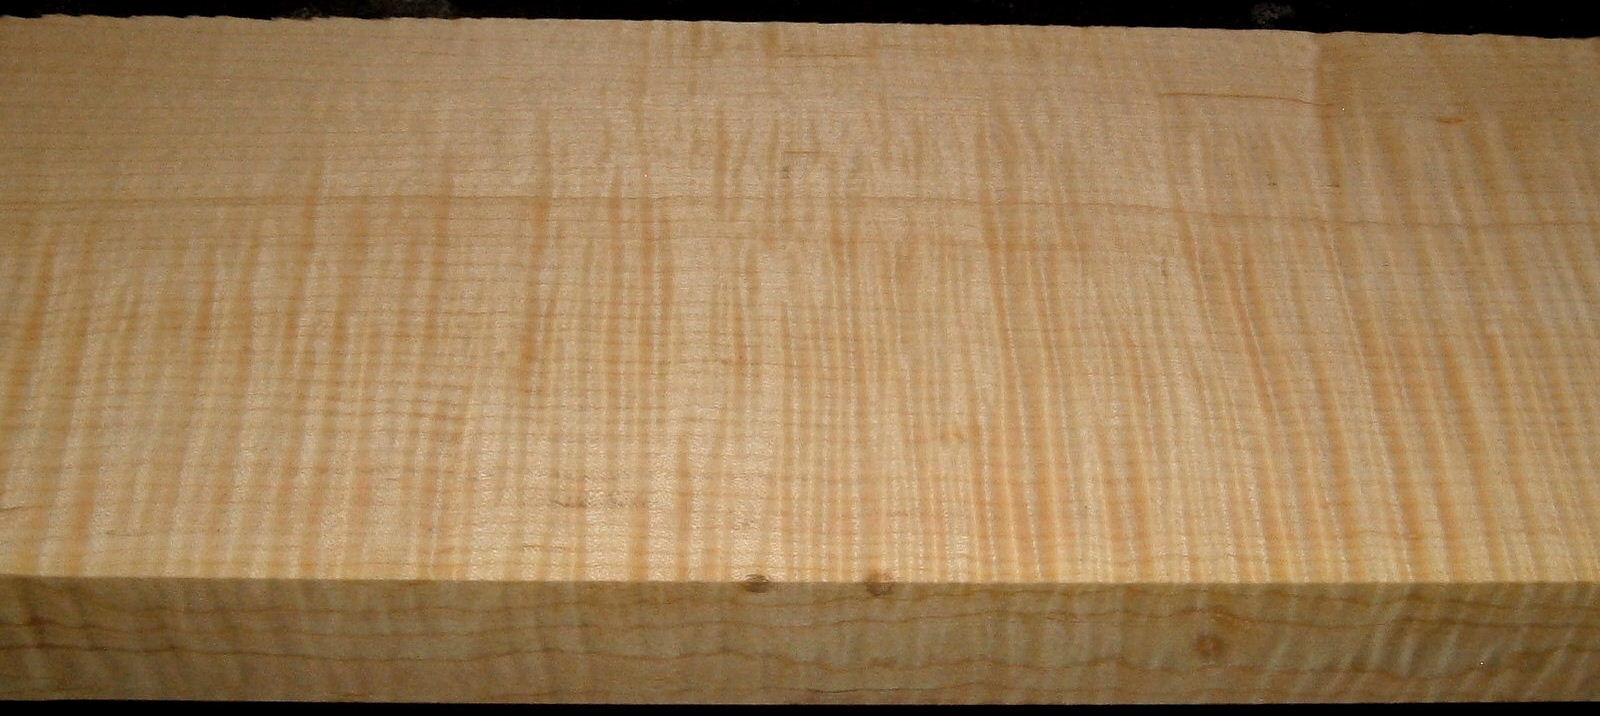 QS2001-4, 1-1/2x5-1/8x32, Quartersawn Curly Maple